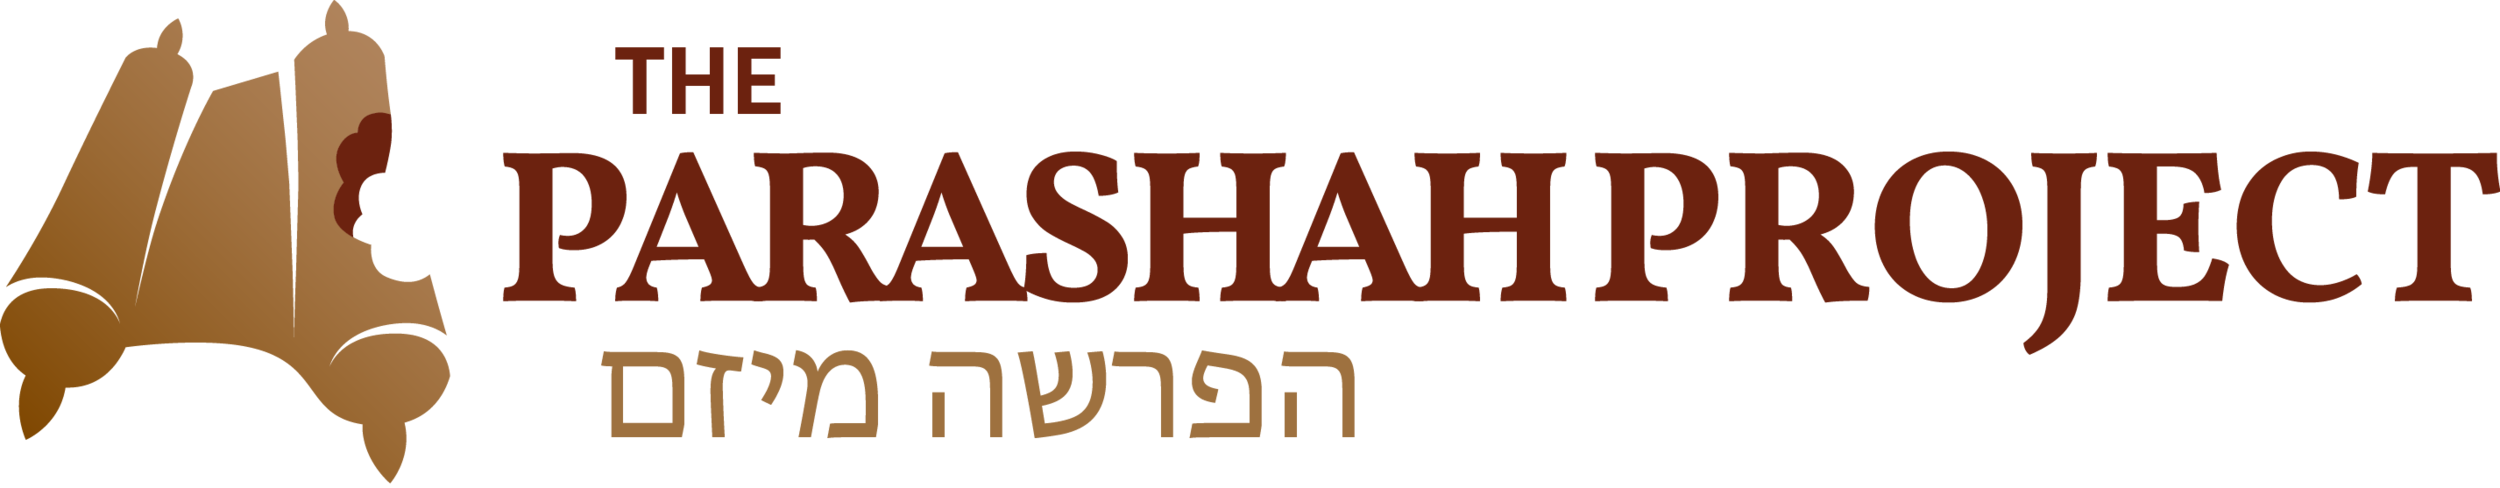 Parashah Project Final Color Left.png